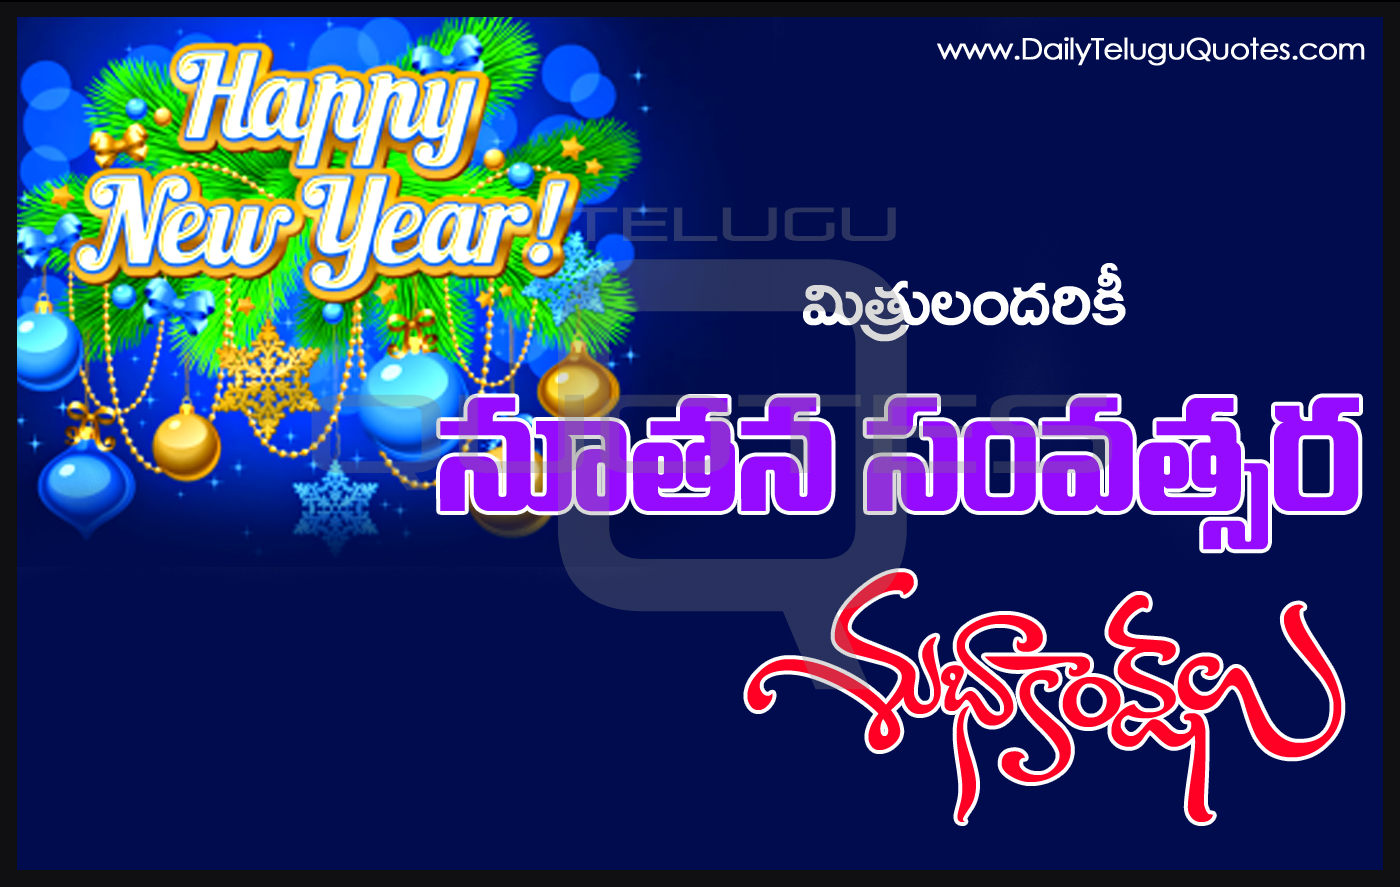 Happy new year 2017 greetings in telugu hd wallpapers best new year happy new year 2017 telugu quotes images wallpapers kristyandbryce Image collections